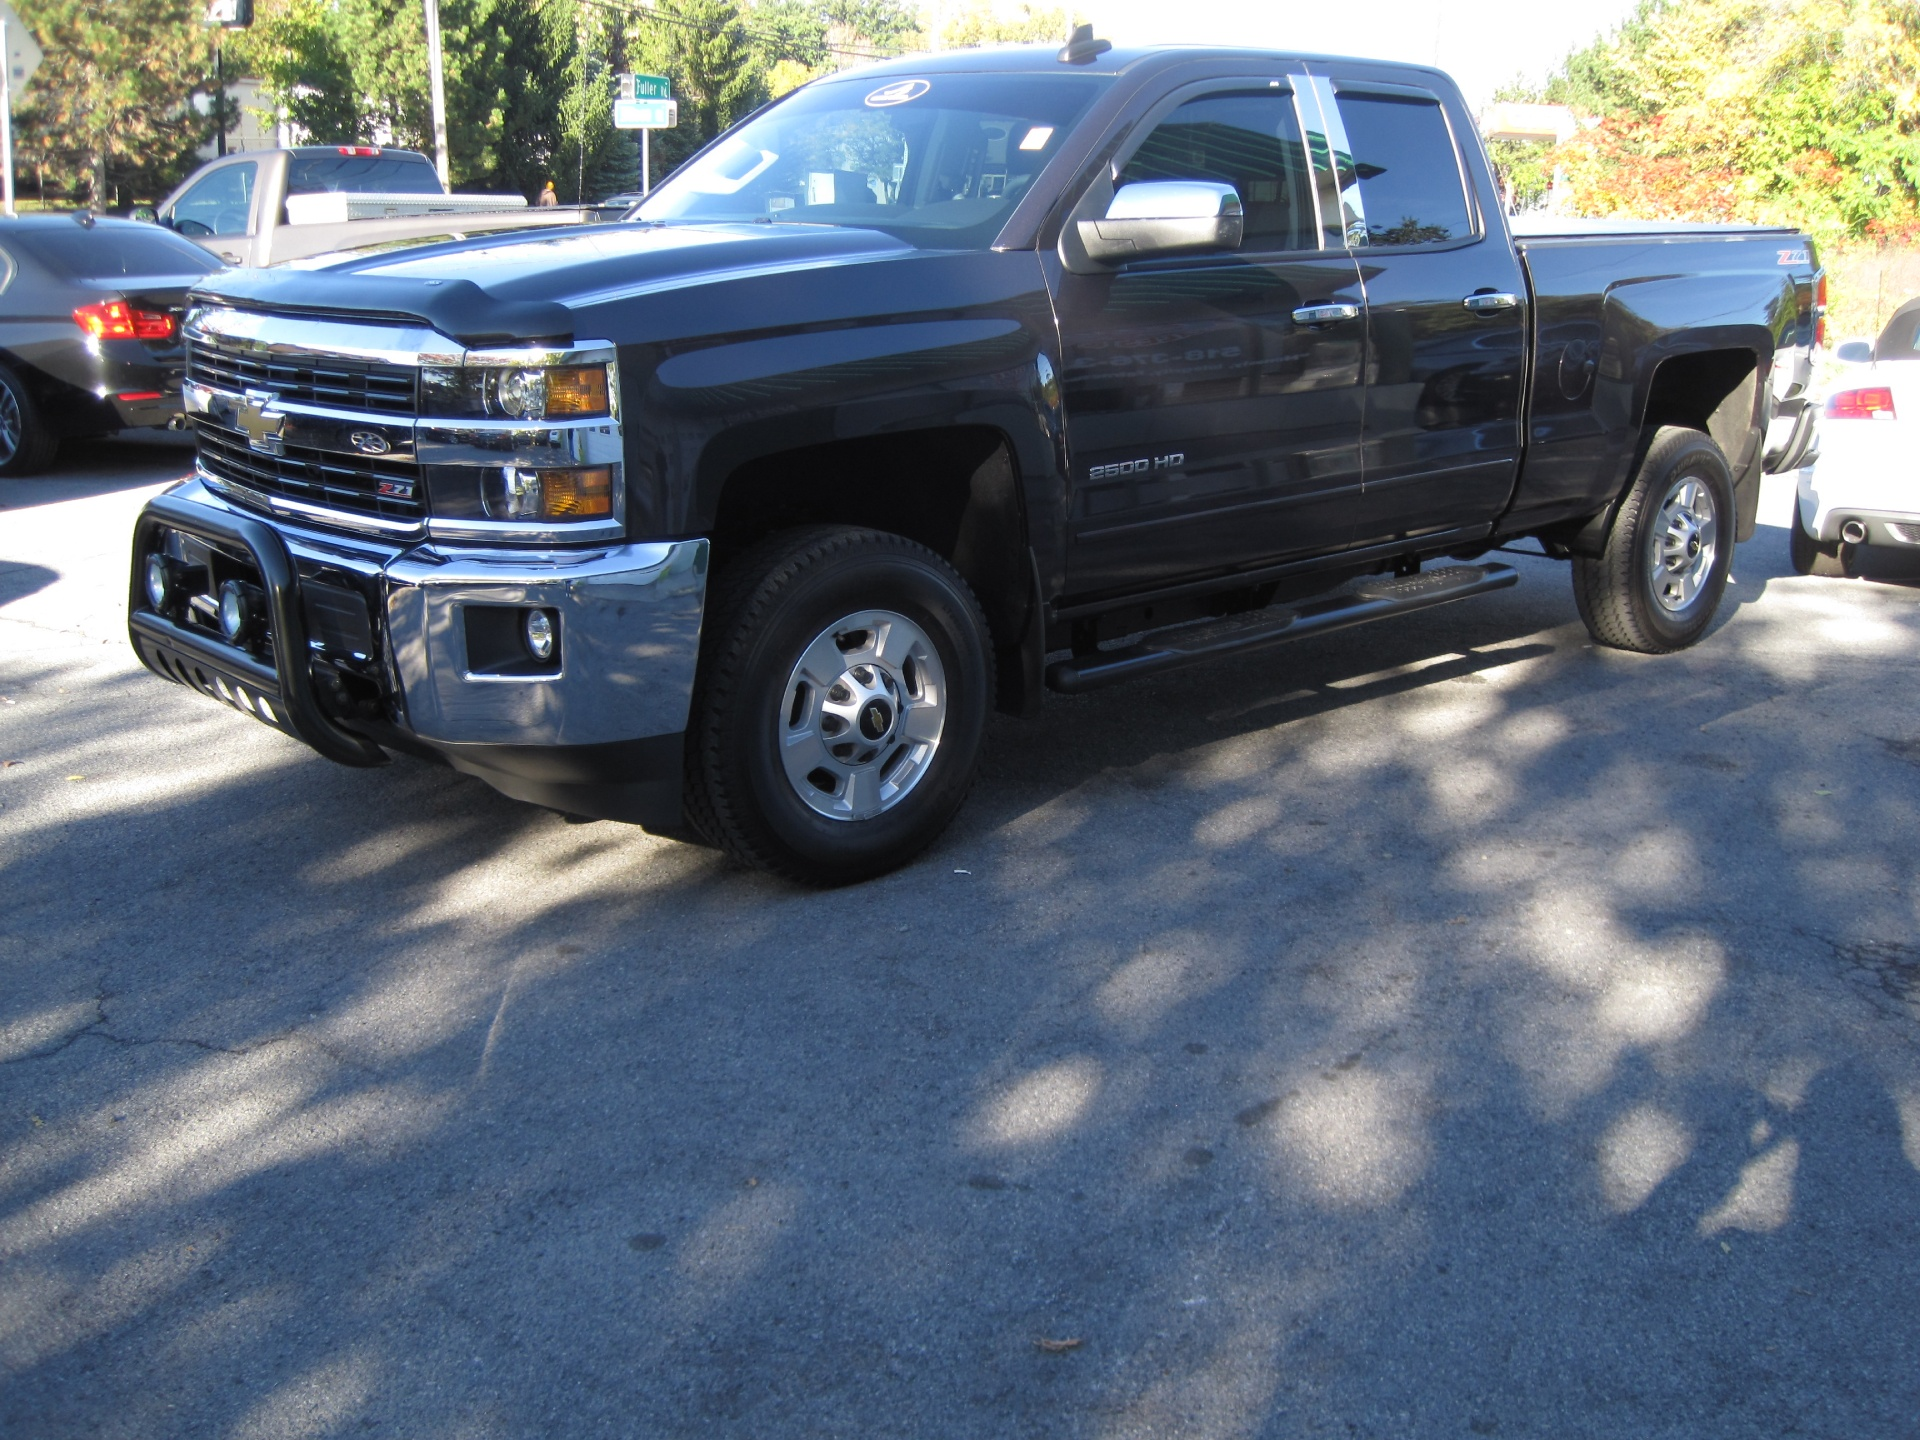 840_p9_l 2015 chevrolet silverado 2500hd lt 2500hd 4x4 extended cab,like  at readyjetset.co